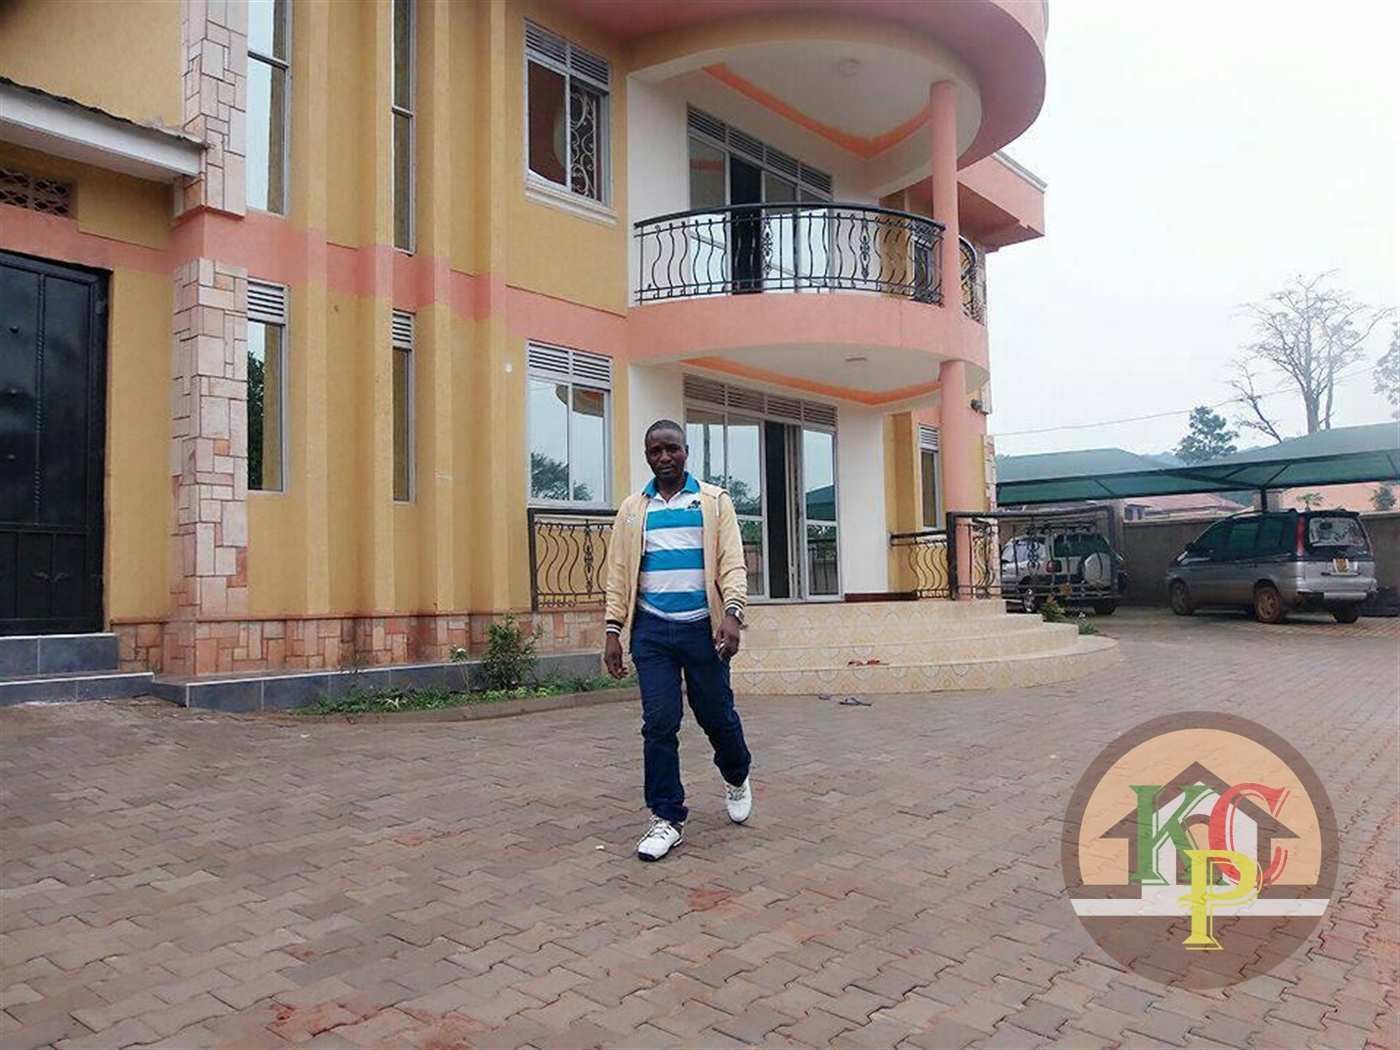 Mansion for rent in Bwanamwaya Wakiso